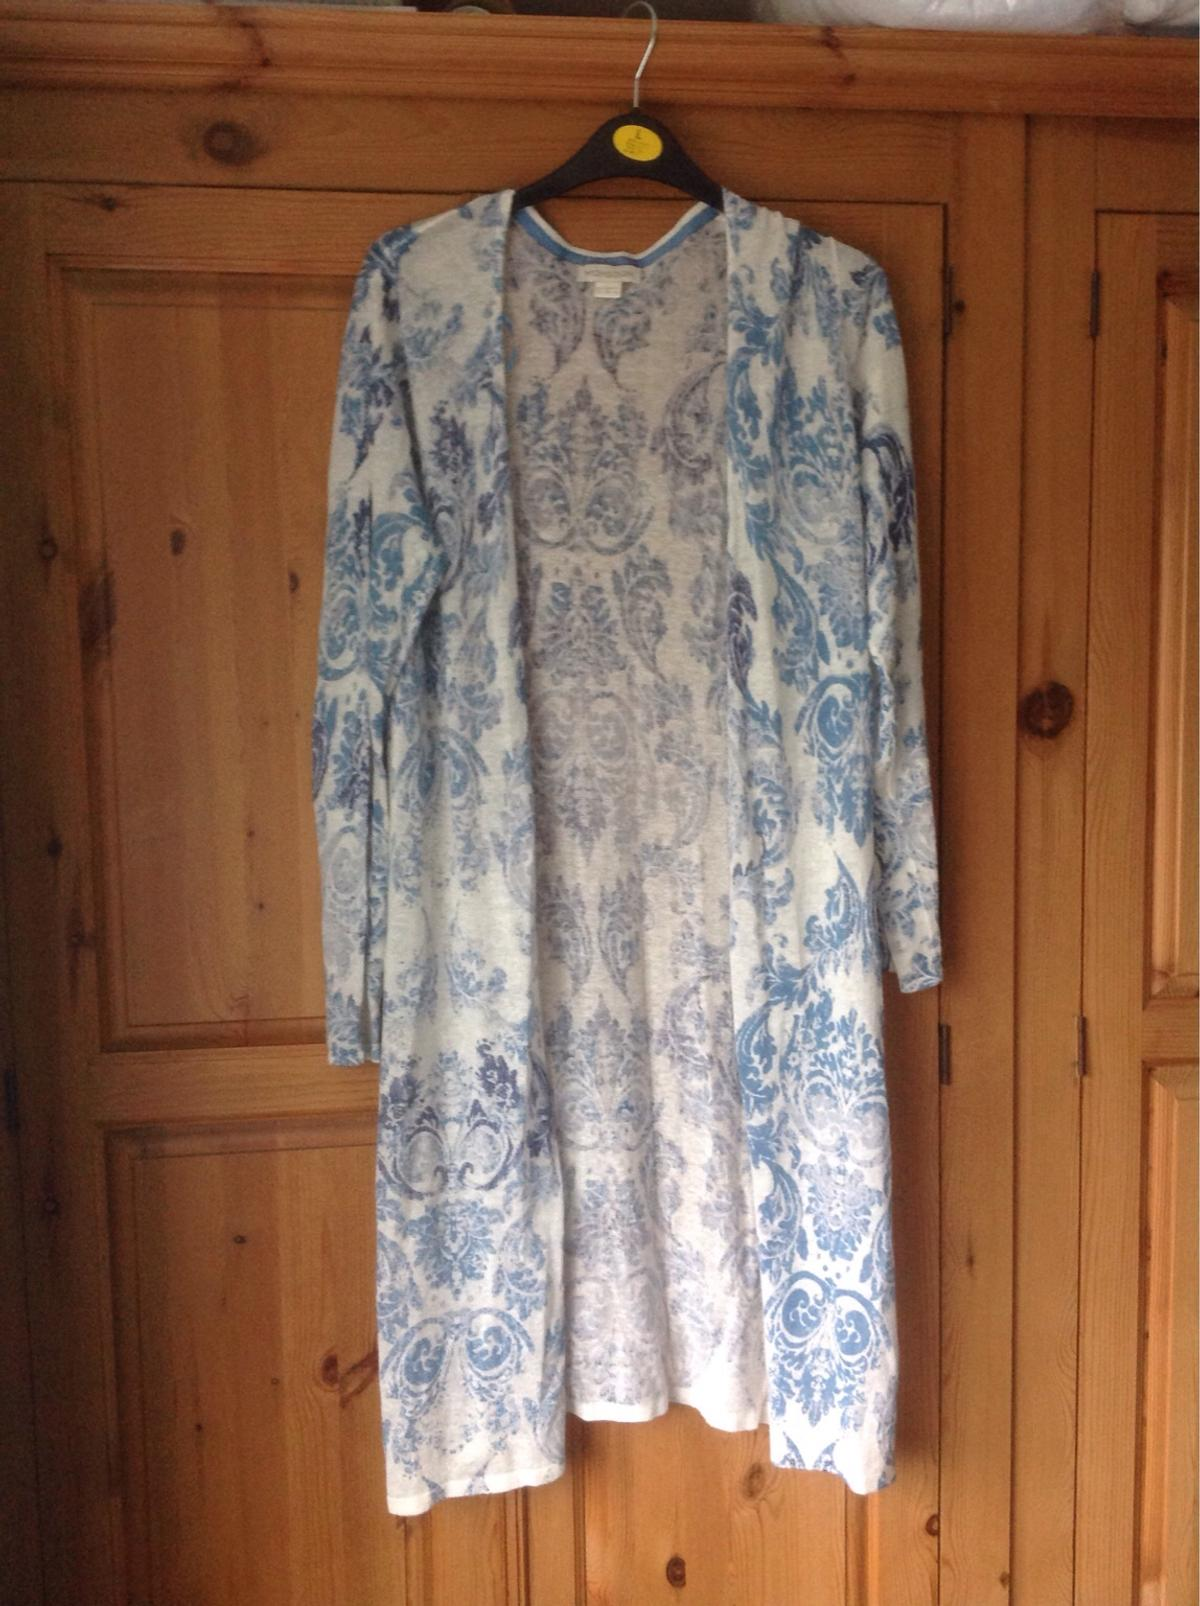 Lovely long patterned cardigan in blue and while from Monsoon. Very good condition.